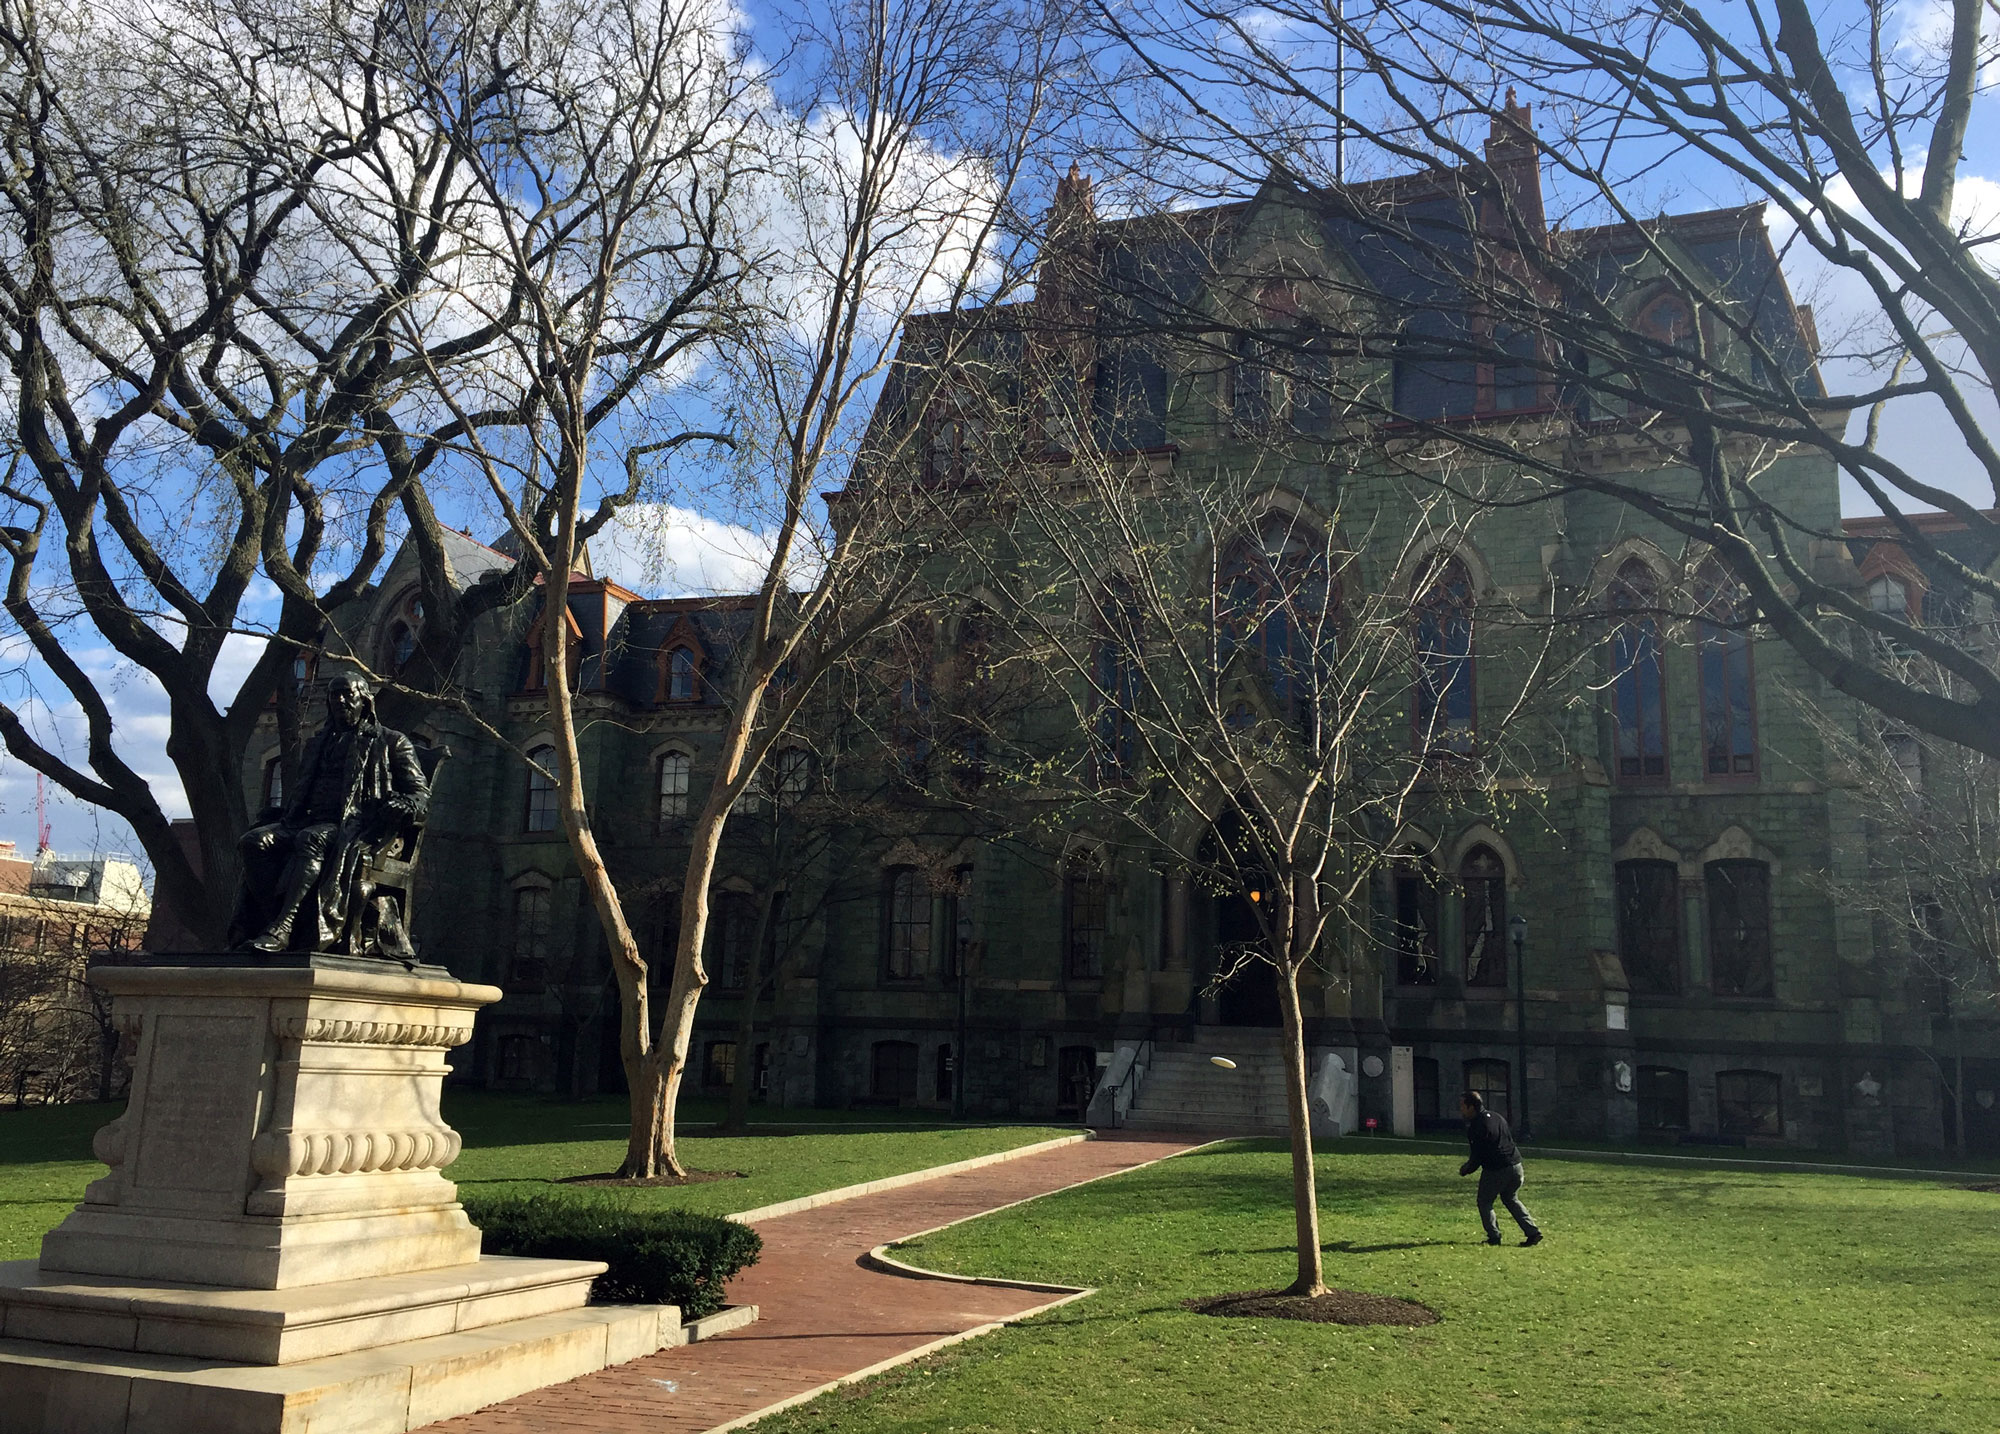 A person walks near College Hall on the University of Pennsylvania campus in Philadelphia on March 20, 2016.